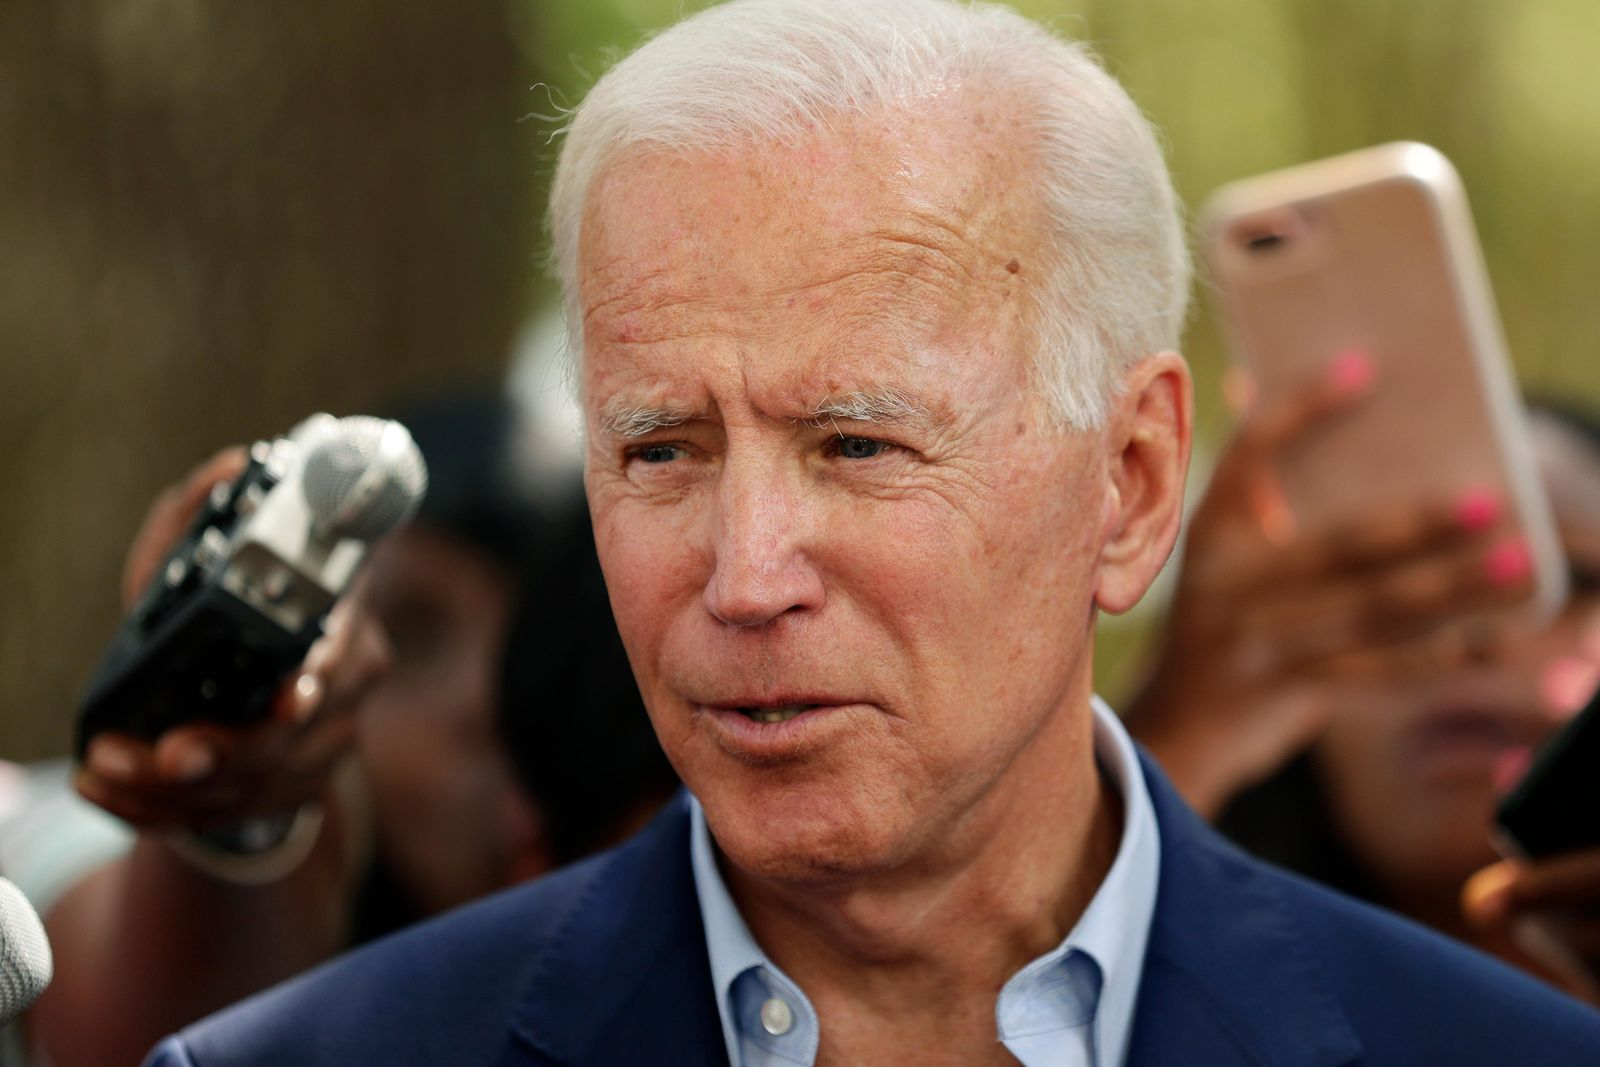 Democratic presidential candidate former Vice President Joe Biden speaks to members of the media following a visit with students on the campus of Texas Southern University Friday, Sept. 13, 2019, in Houston. (AP Photo/Eric Gay)